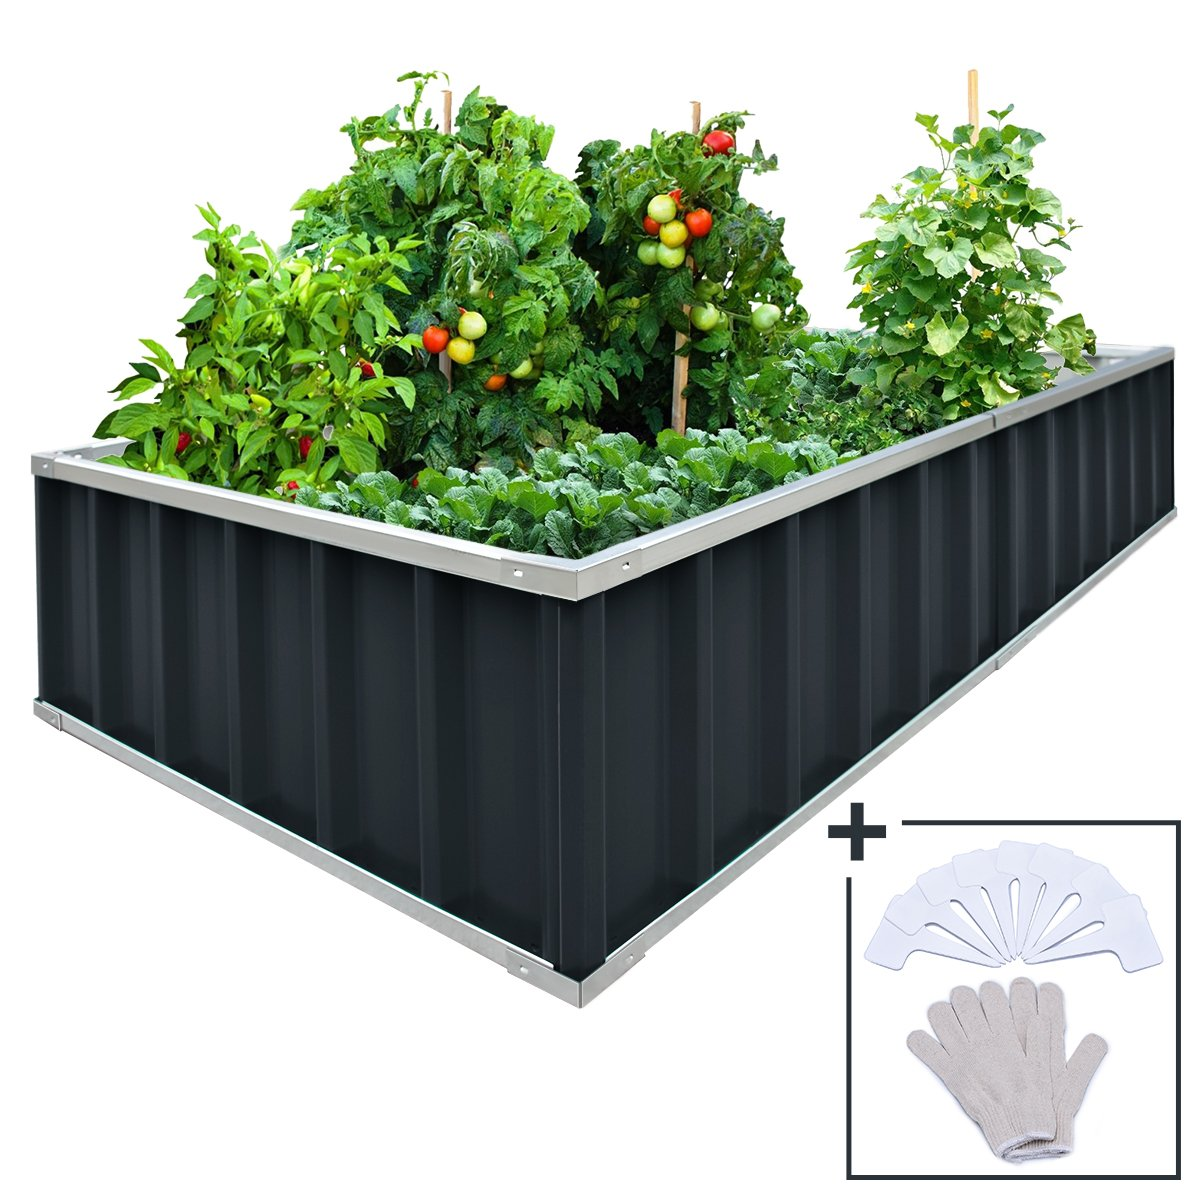 KING BIRD Extra-Thick 2-Ply Reinforced Card Frame Raised Garden Bed Galvanized Steel Metal Planter Kit Box Green 68 x 36 x 12 with 8pcs T-Types Tag 1 Pair of Gloves Grey, 17 Cu. Ft.